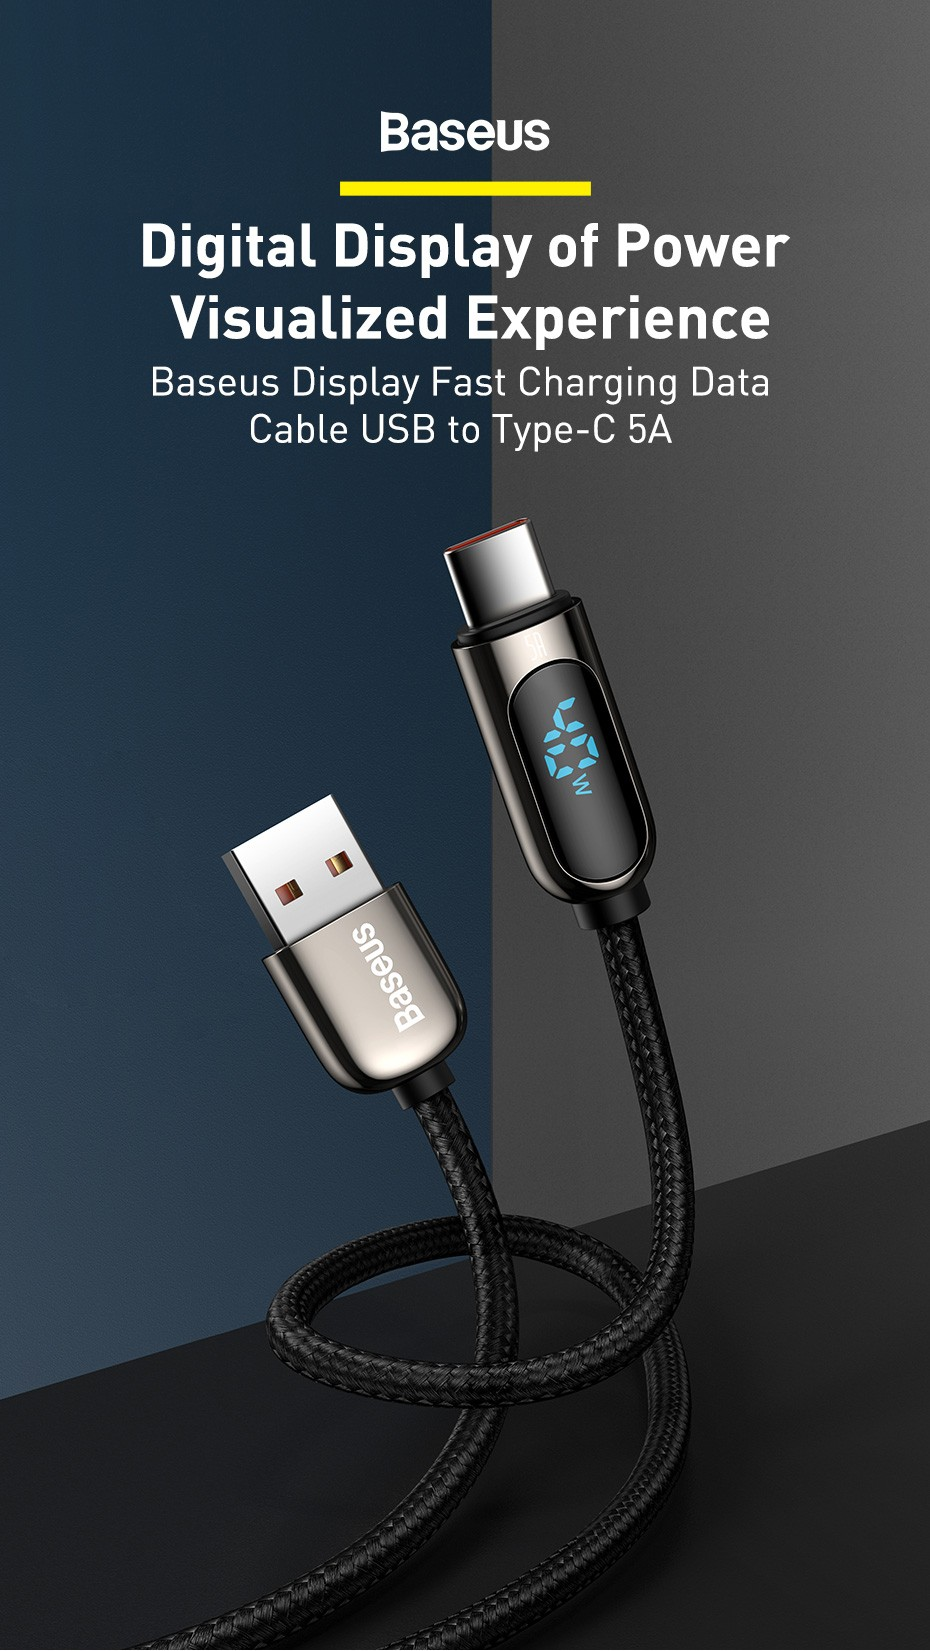 Baseus Digital Display Fast Charging Data Cable USB to Type-C Quick Charge Line 3.5A Smart Data Cable for Mobile Phone and Tablet - Black 1M